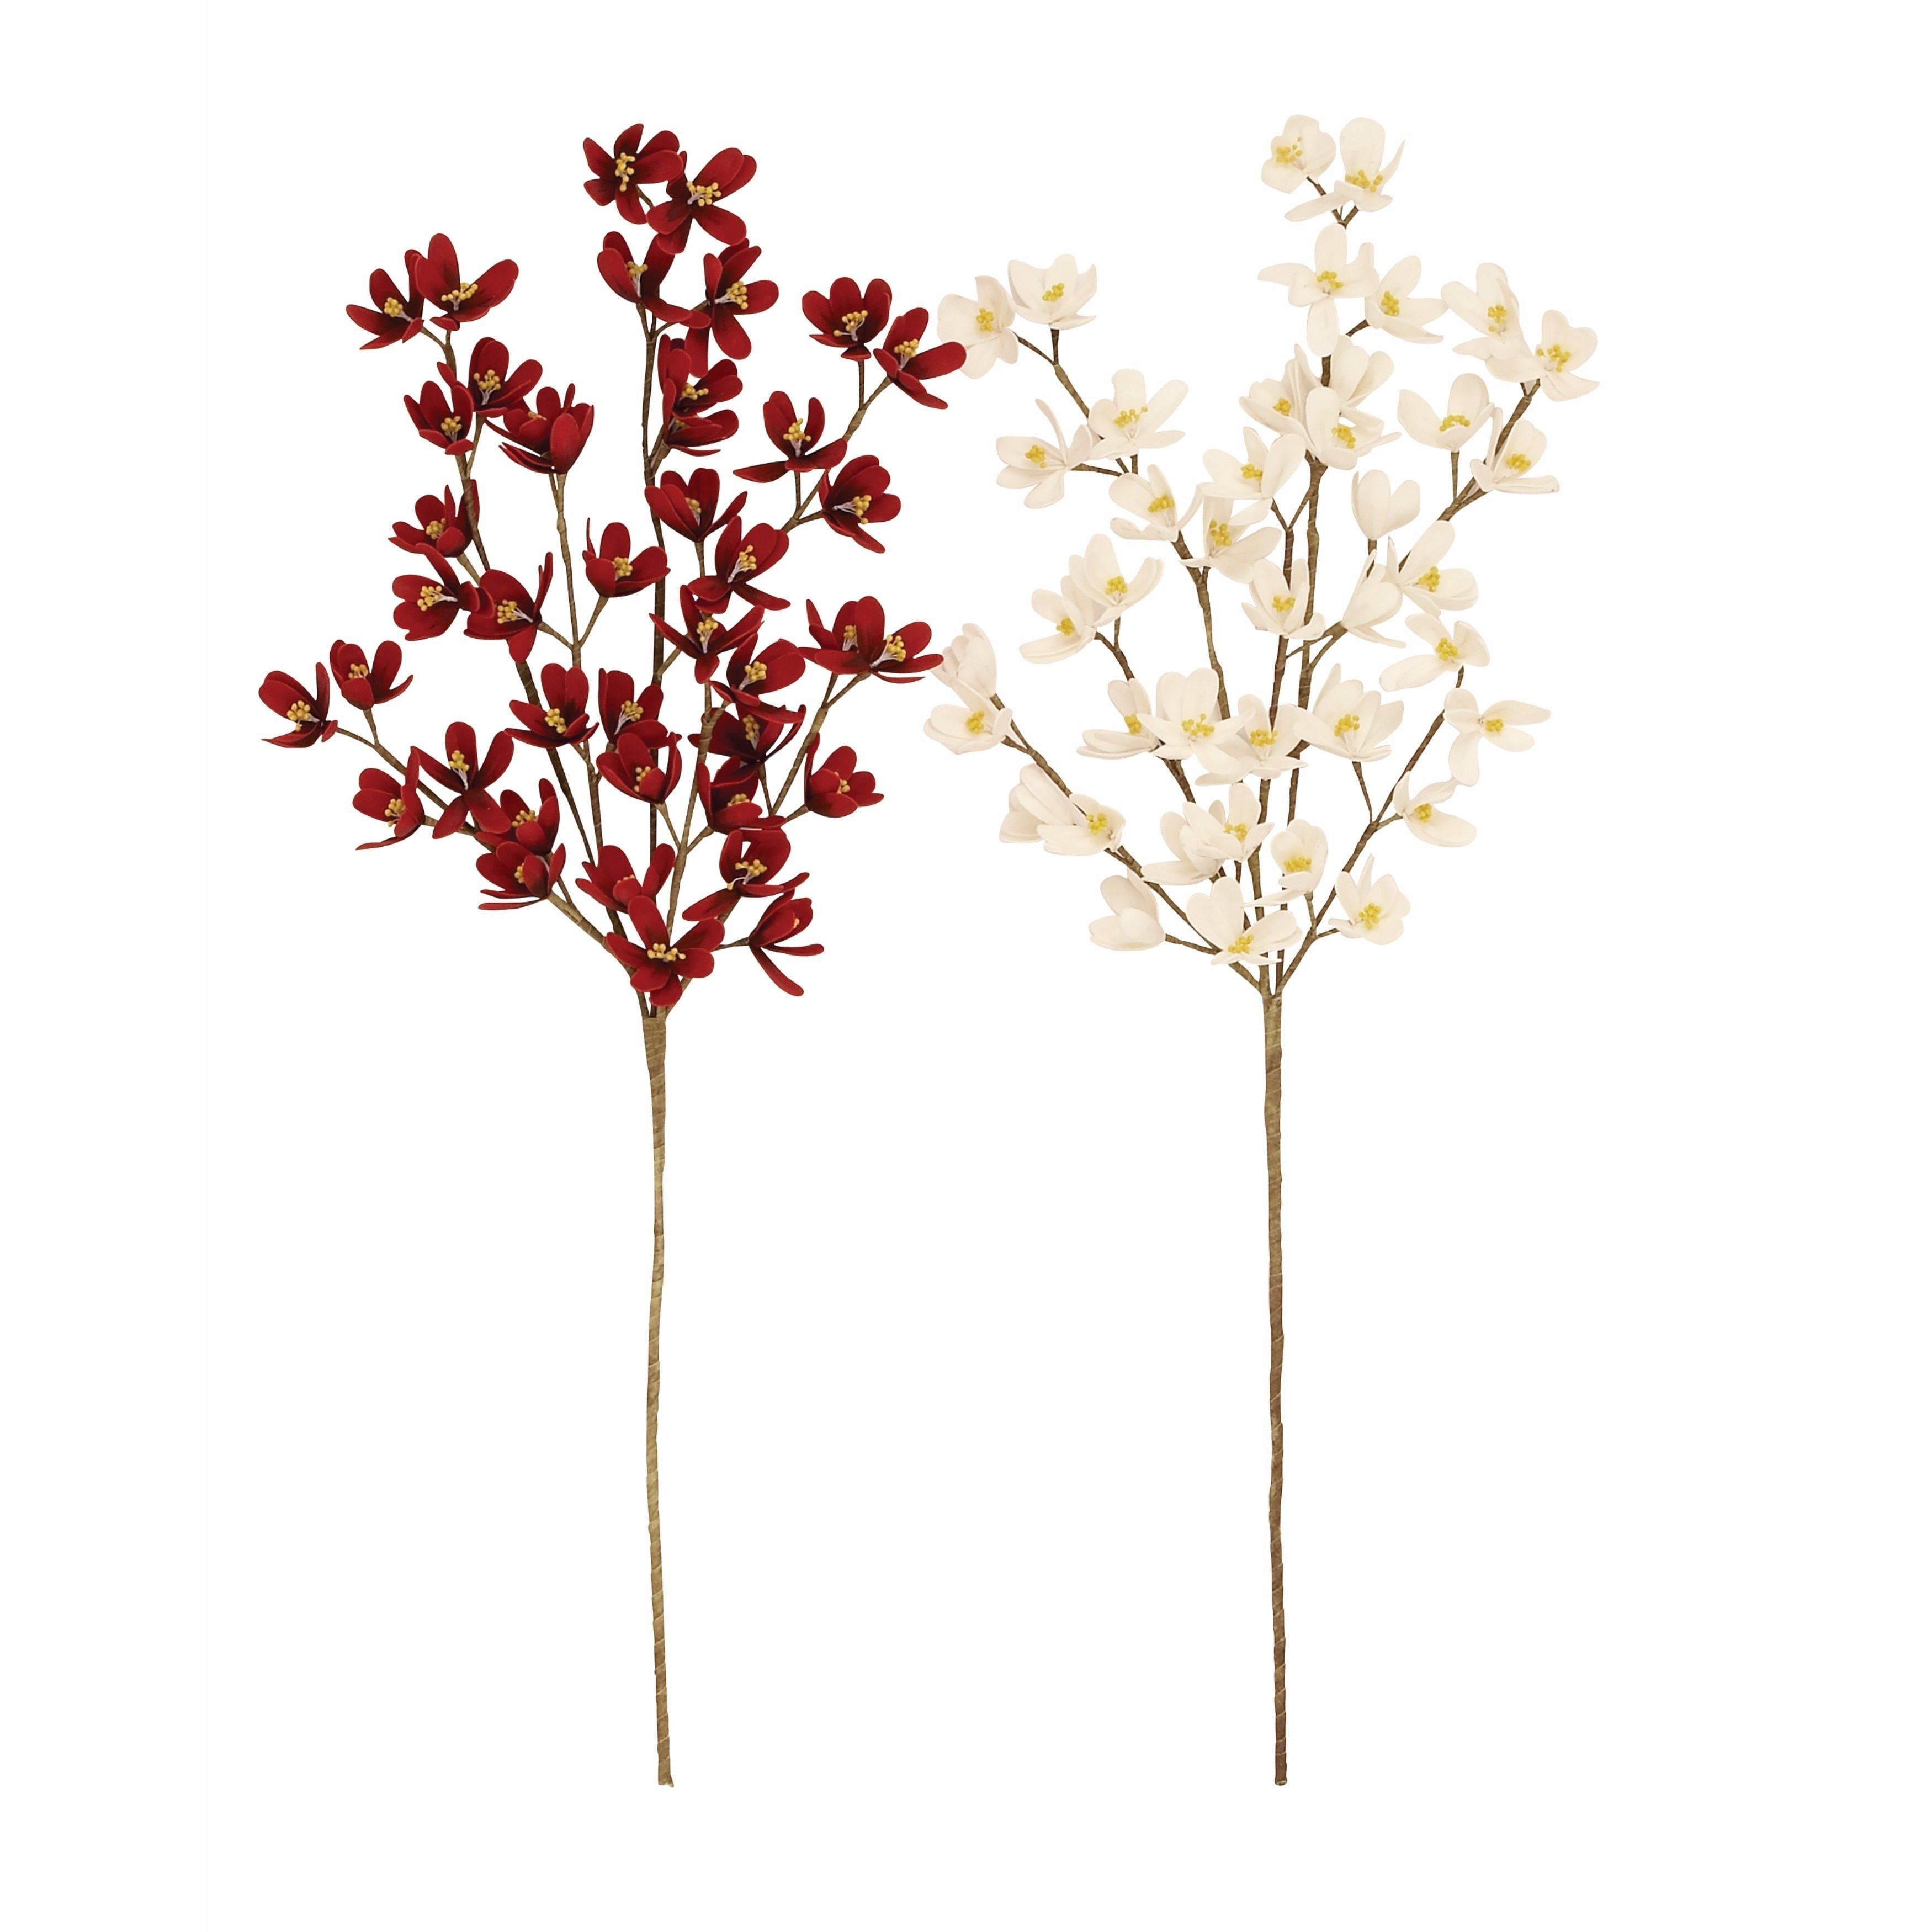 Studio 350 Dogwood Red And White Artificial Flowers Set Of 2